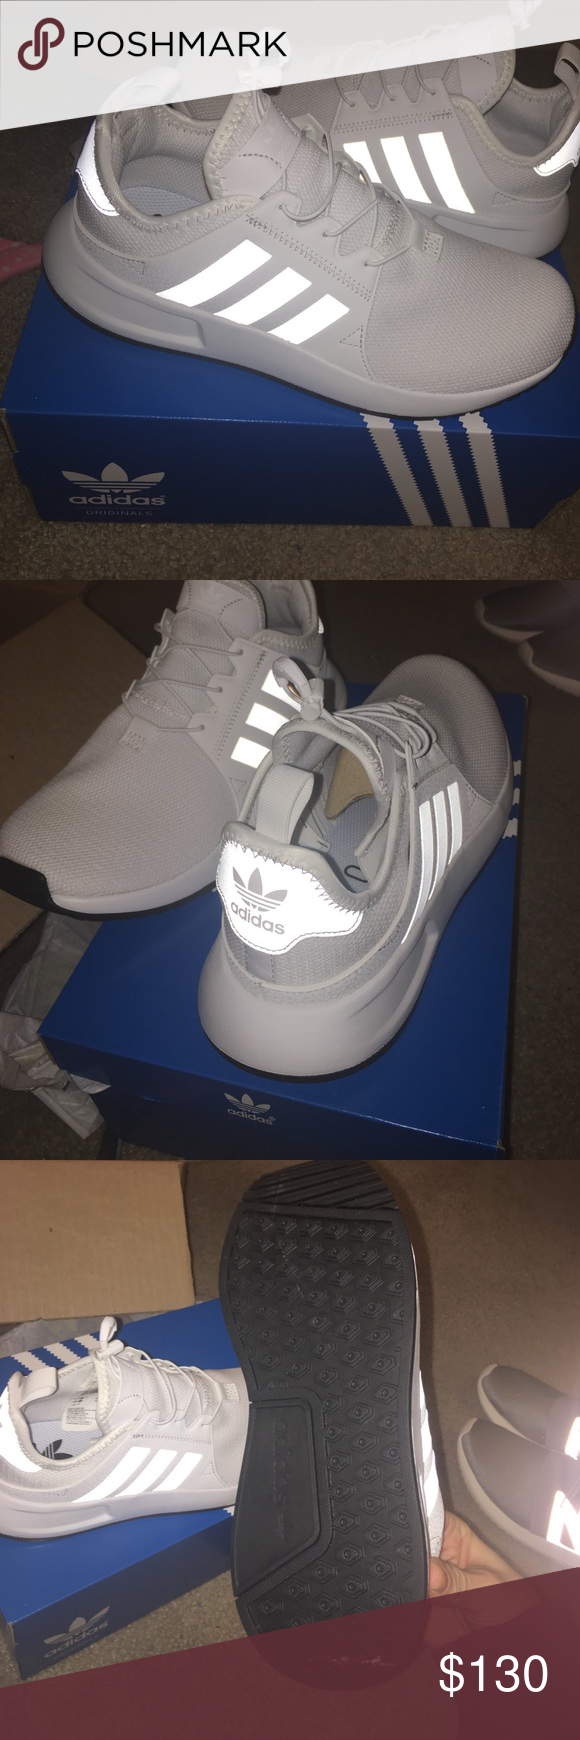 910b19f34c3b Brand new adidas XPLR shoes Brand new just came in! Didn t want them. Youth  4.5 means 6.5 women s size Adidas Shoes